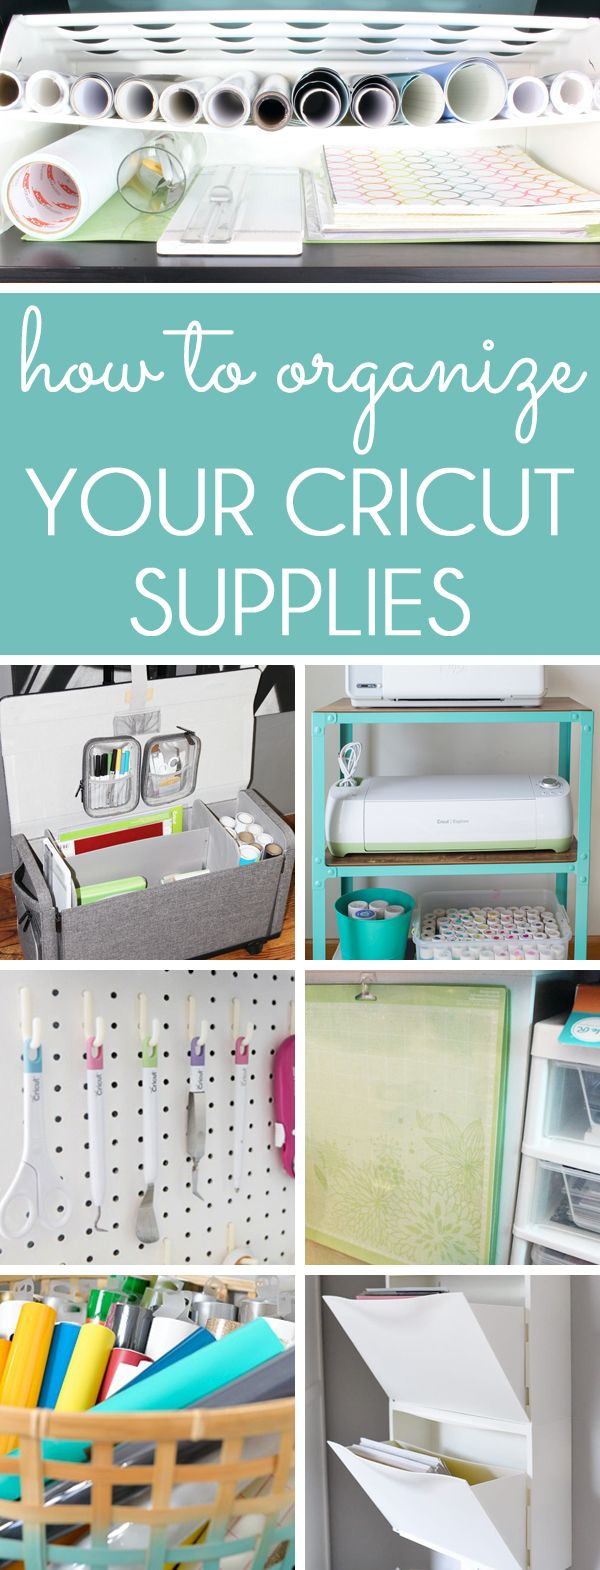 8198 best cricut ideas from bloggers and more images on for How to organize craft supplies